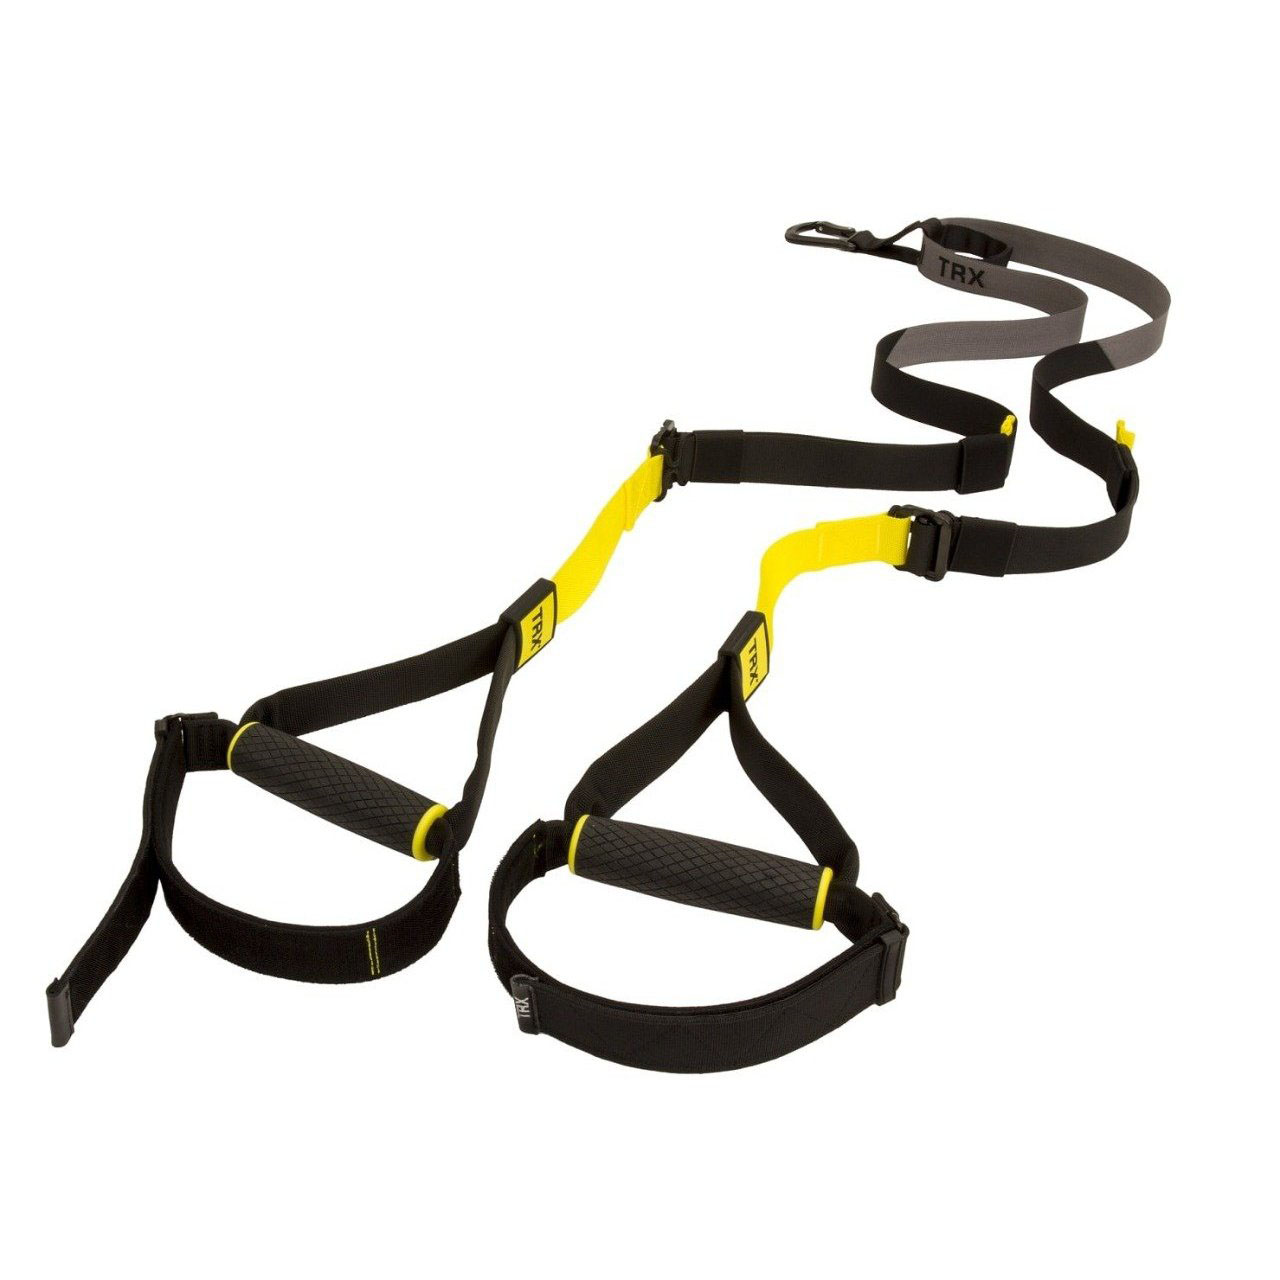 TRX - SUSPENSION TRAINING CLUB C4